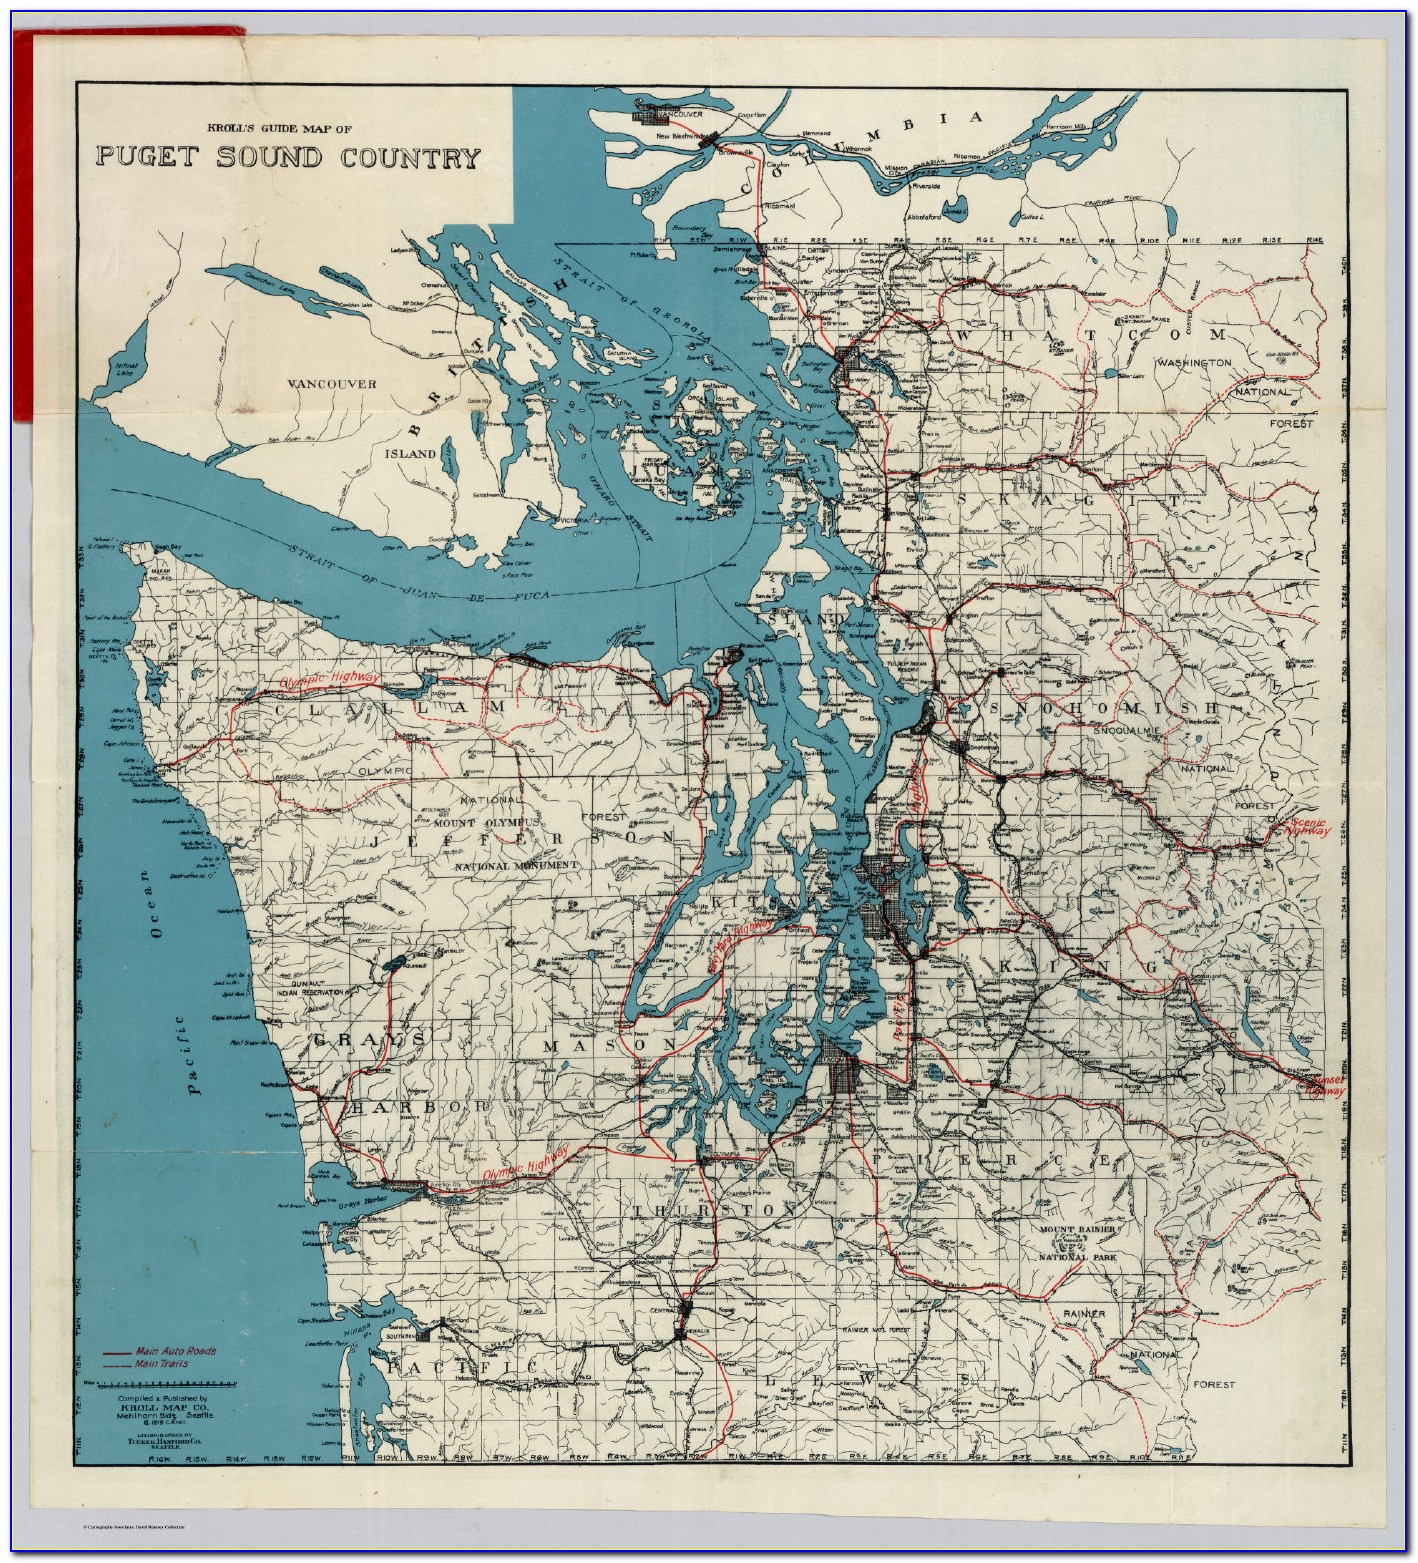 Wall Maps Of Puget Sound